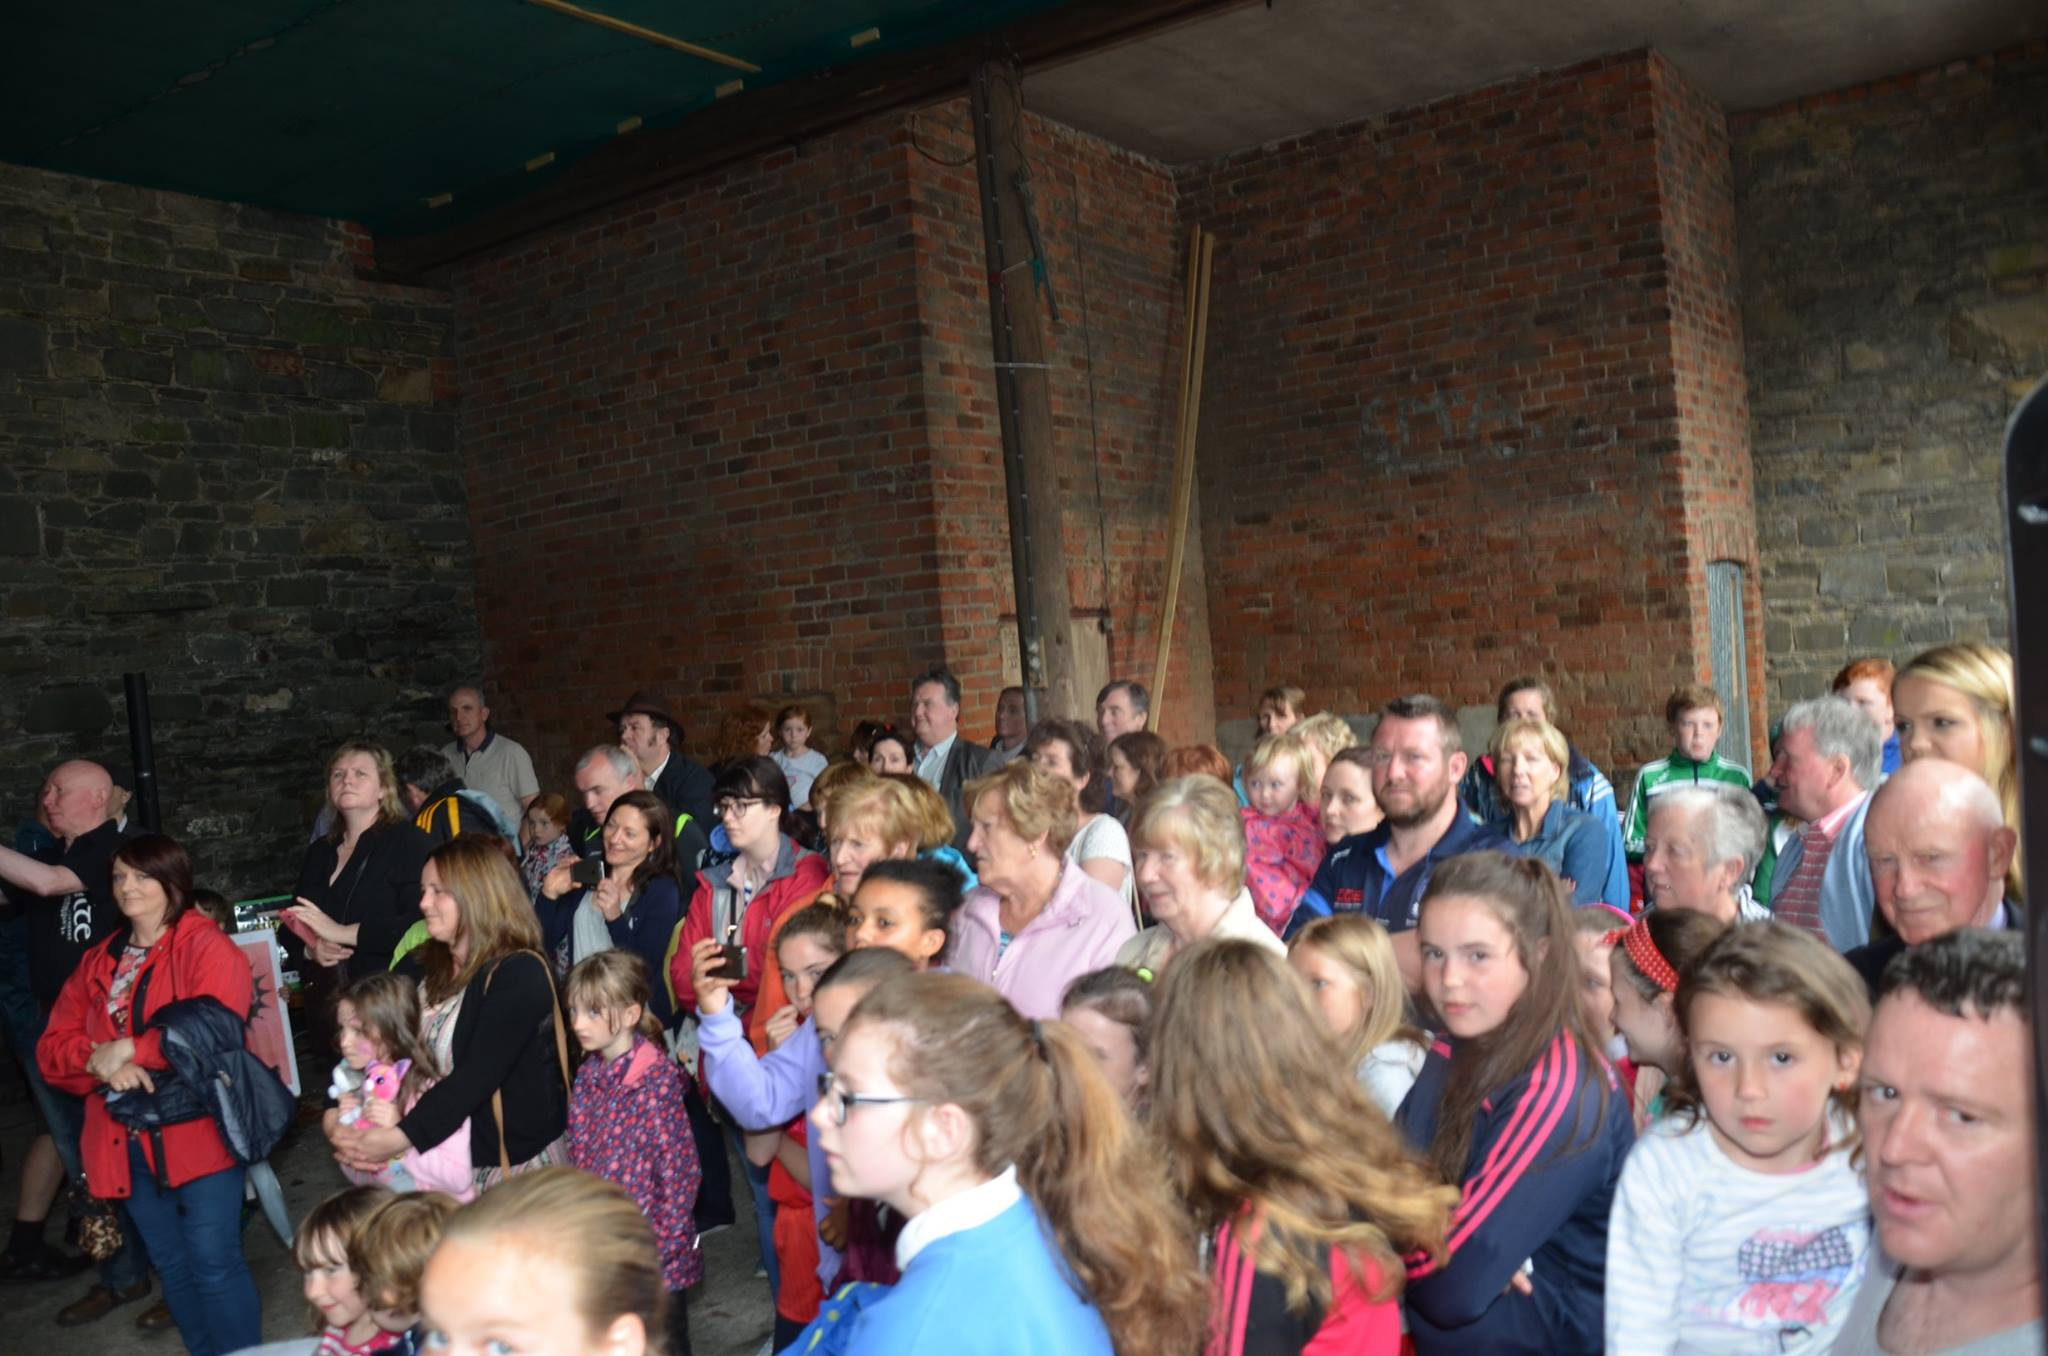 A section of the audience who attended the events in the Market House/Court House